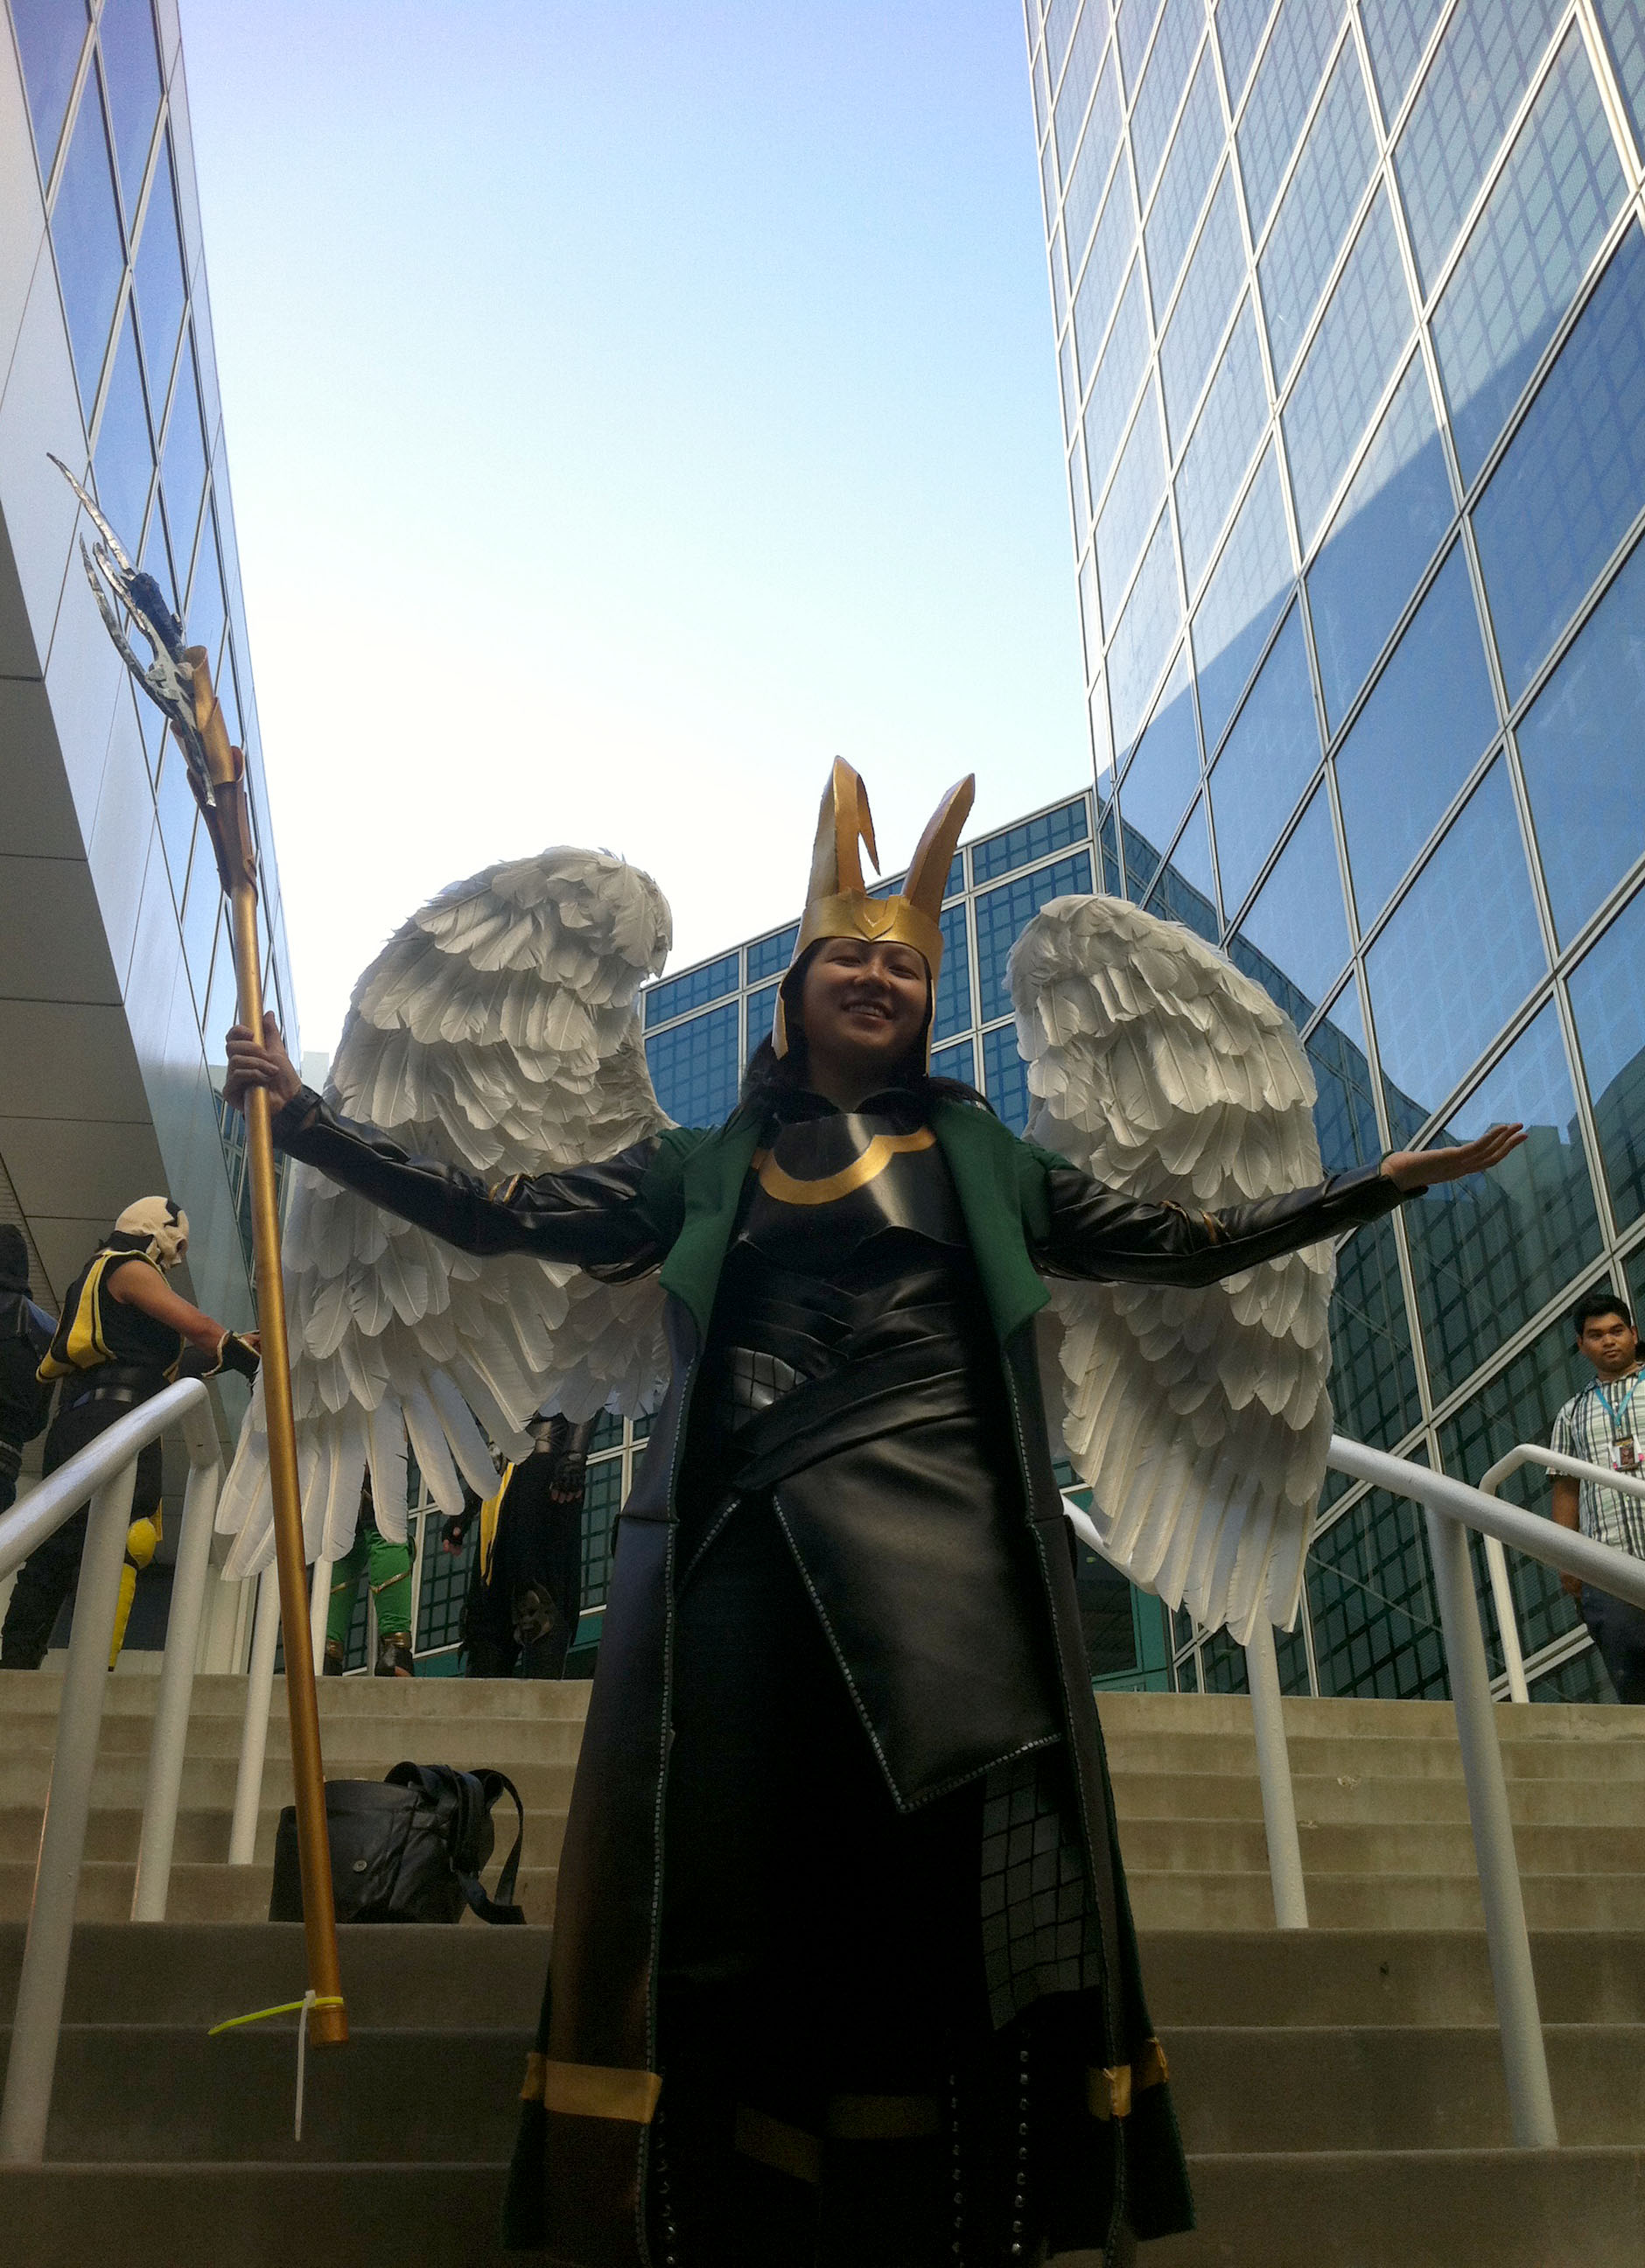 LokiCosplay